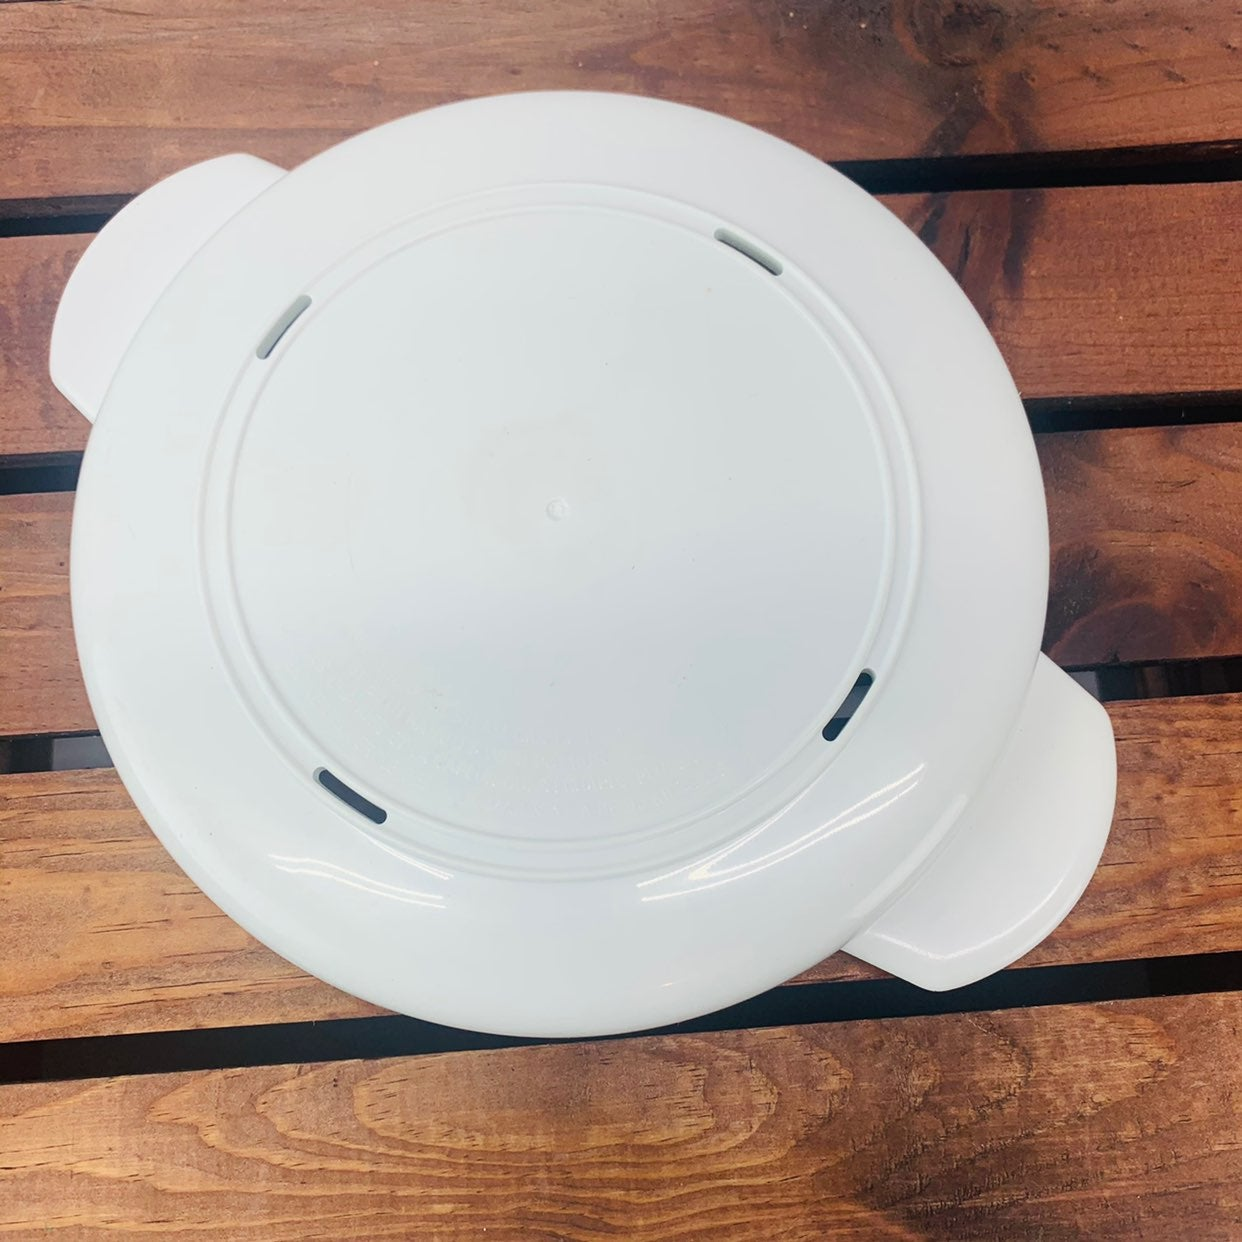 Black Decker Replacement Rice Steam lid